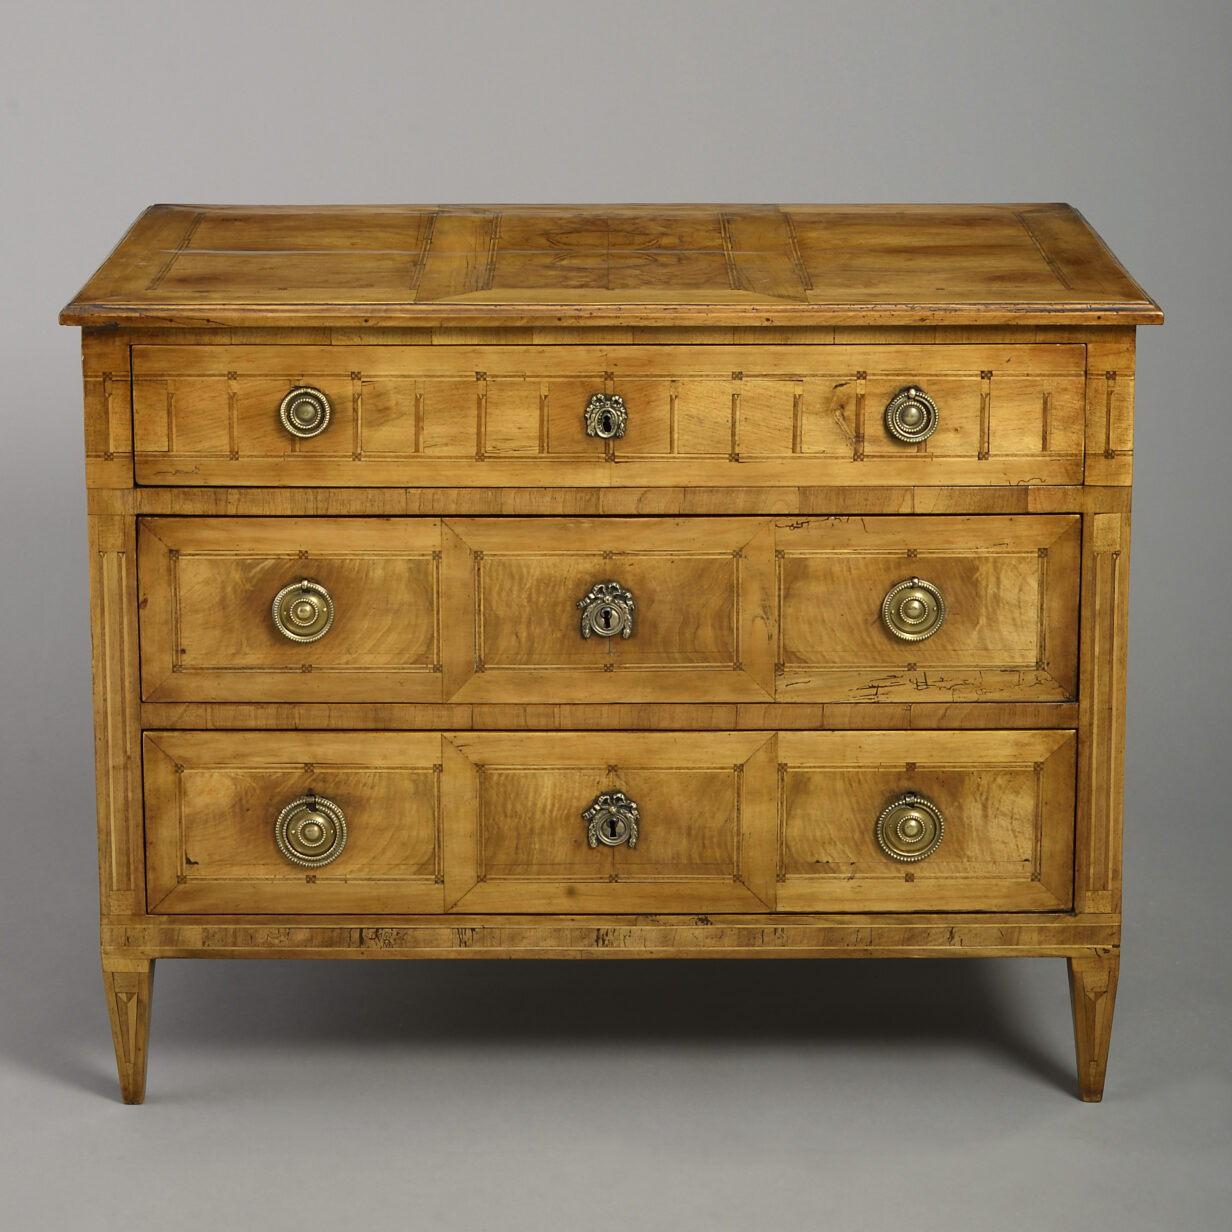 Louis XVI Parquetry commode